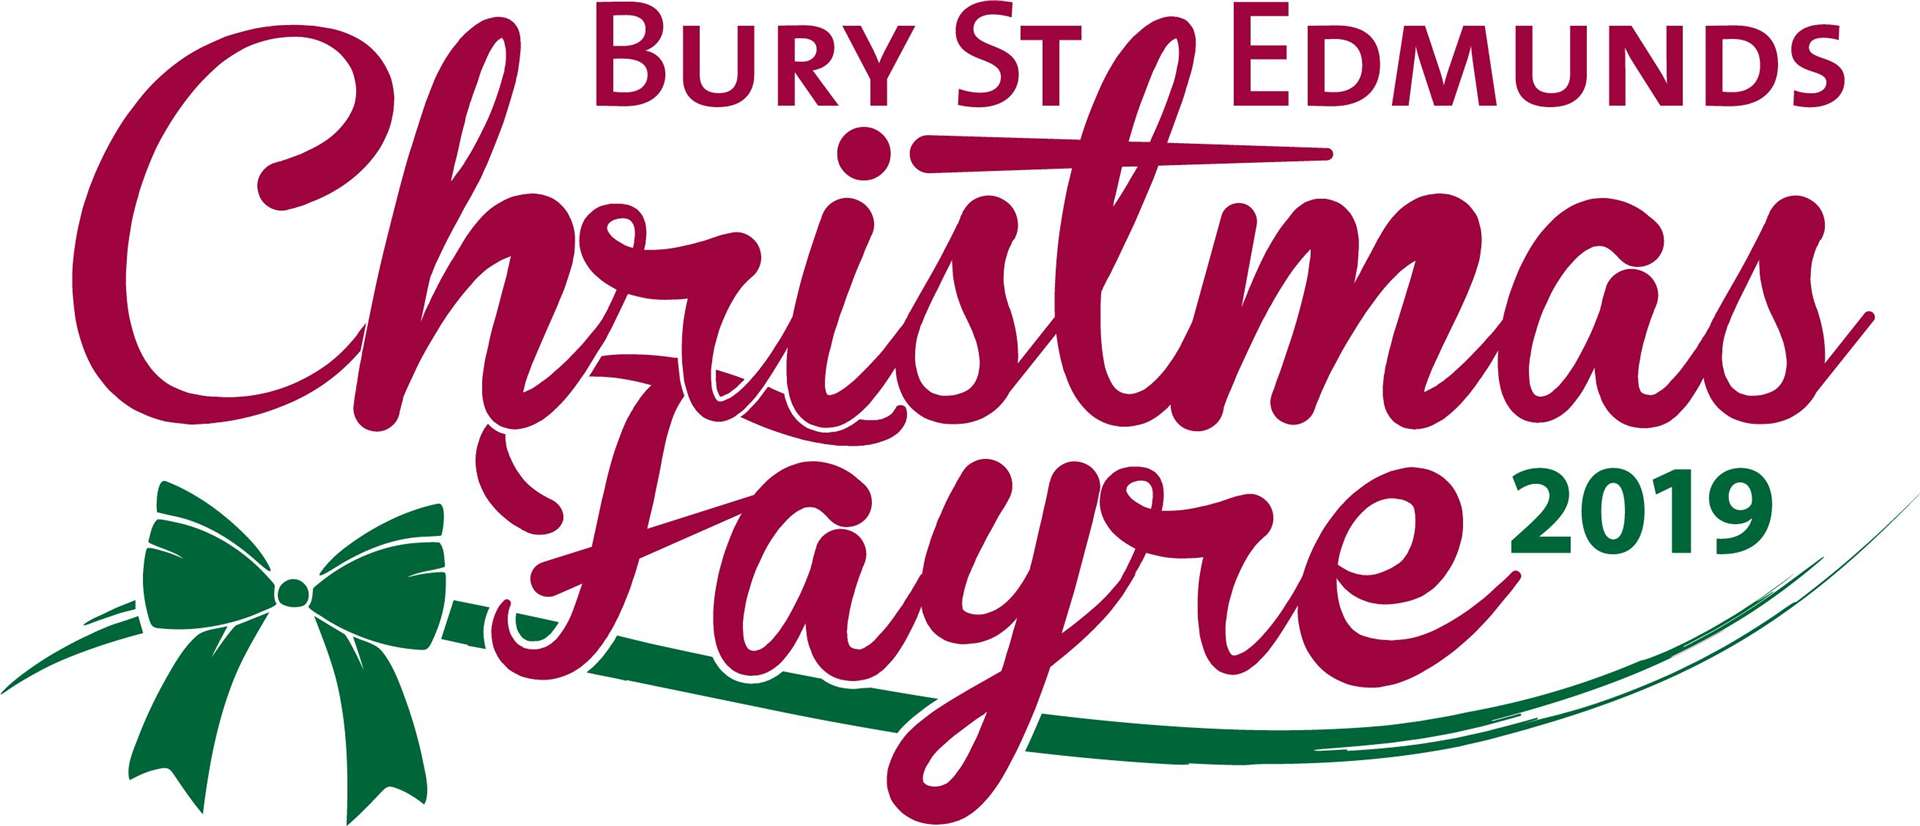 Bury St Edmunds Christmas Fayre 2019 logo. Picture: West Suffolk Council